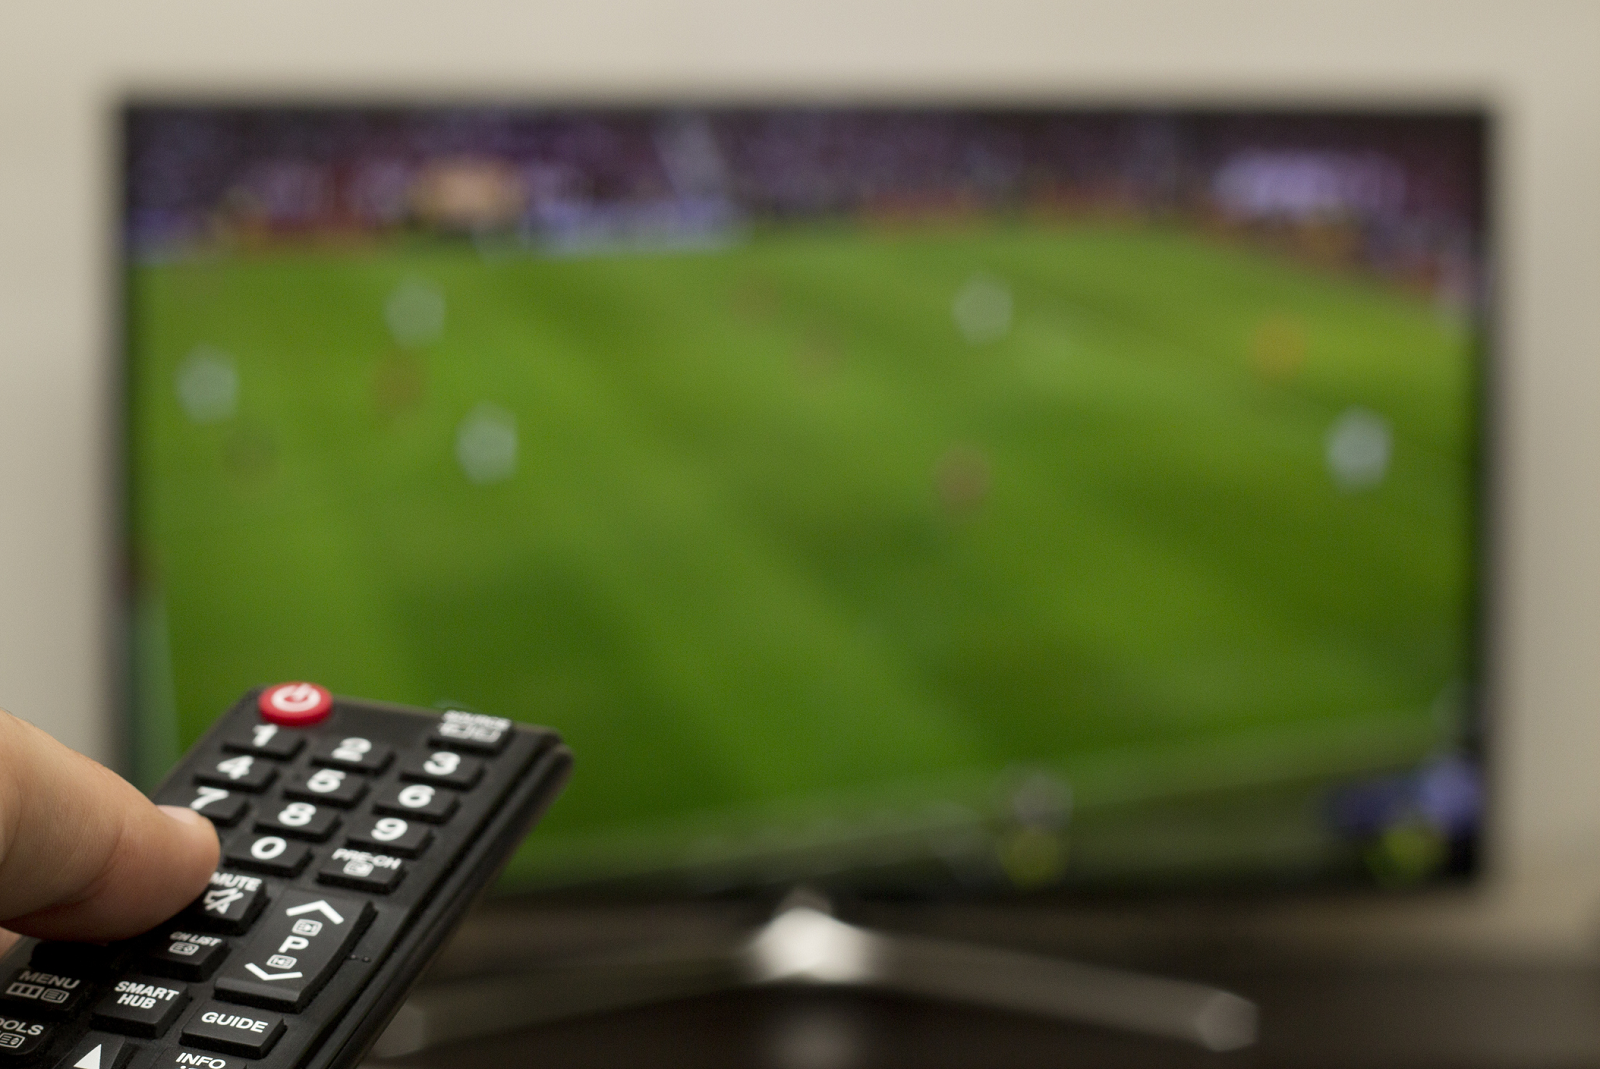 Decoders with football channels - Business Today